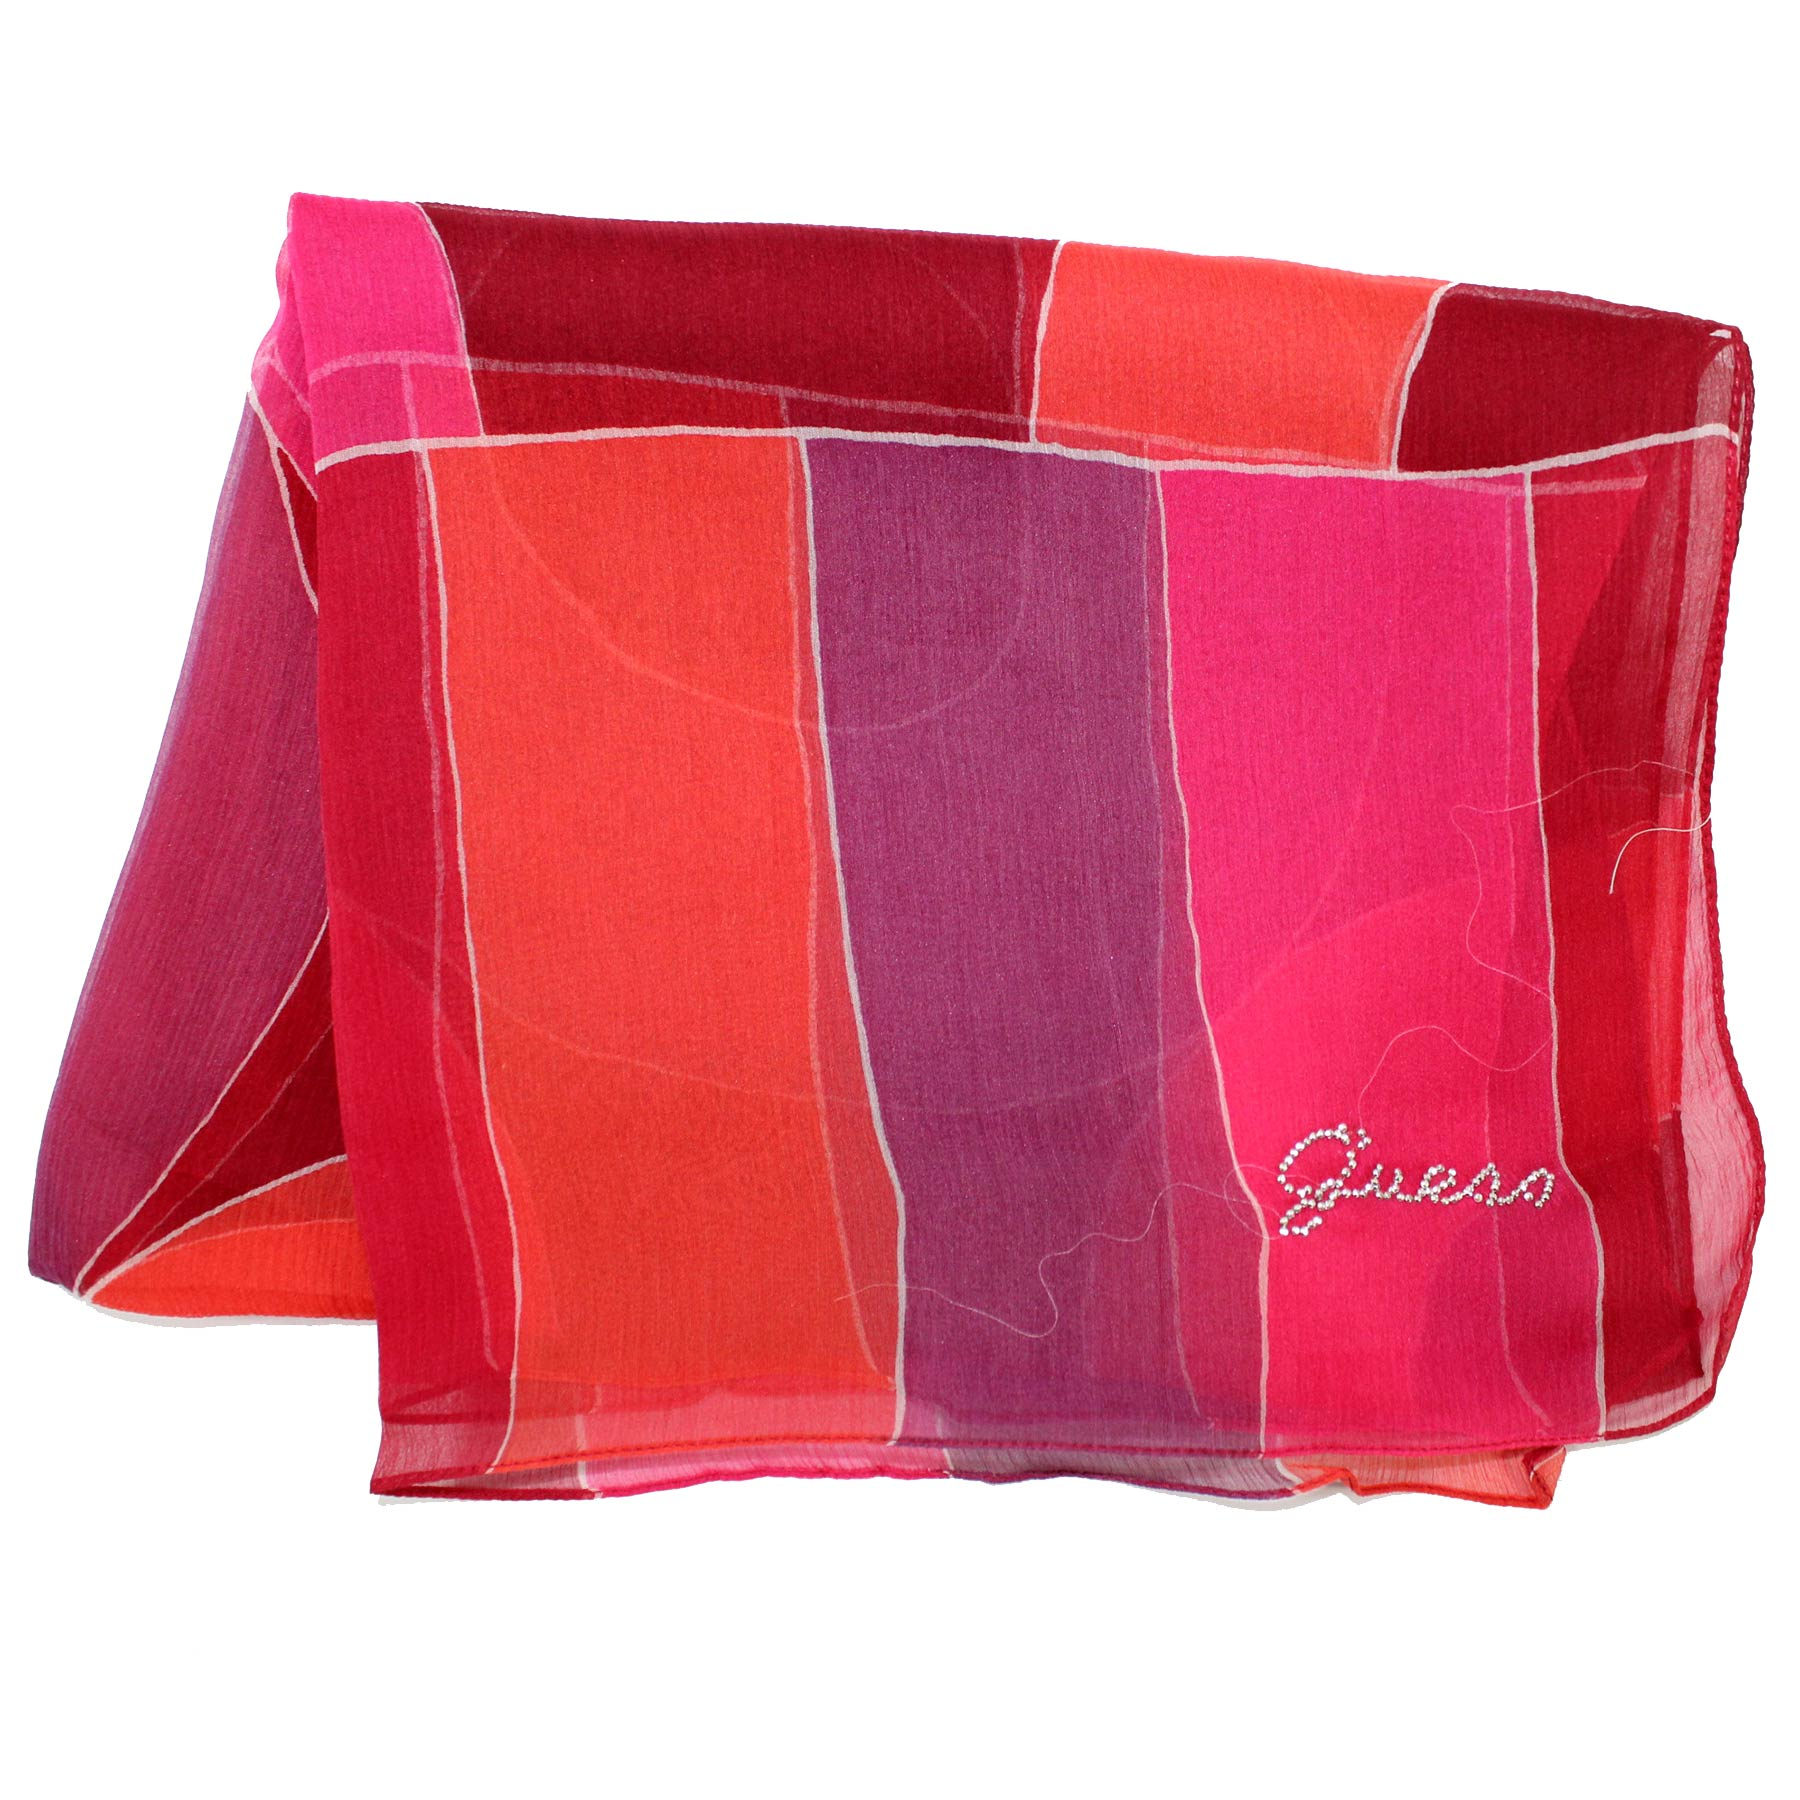 Guess Scarf Pink Orange Purple